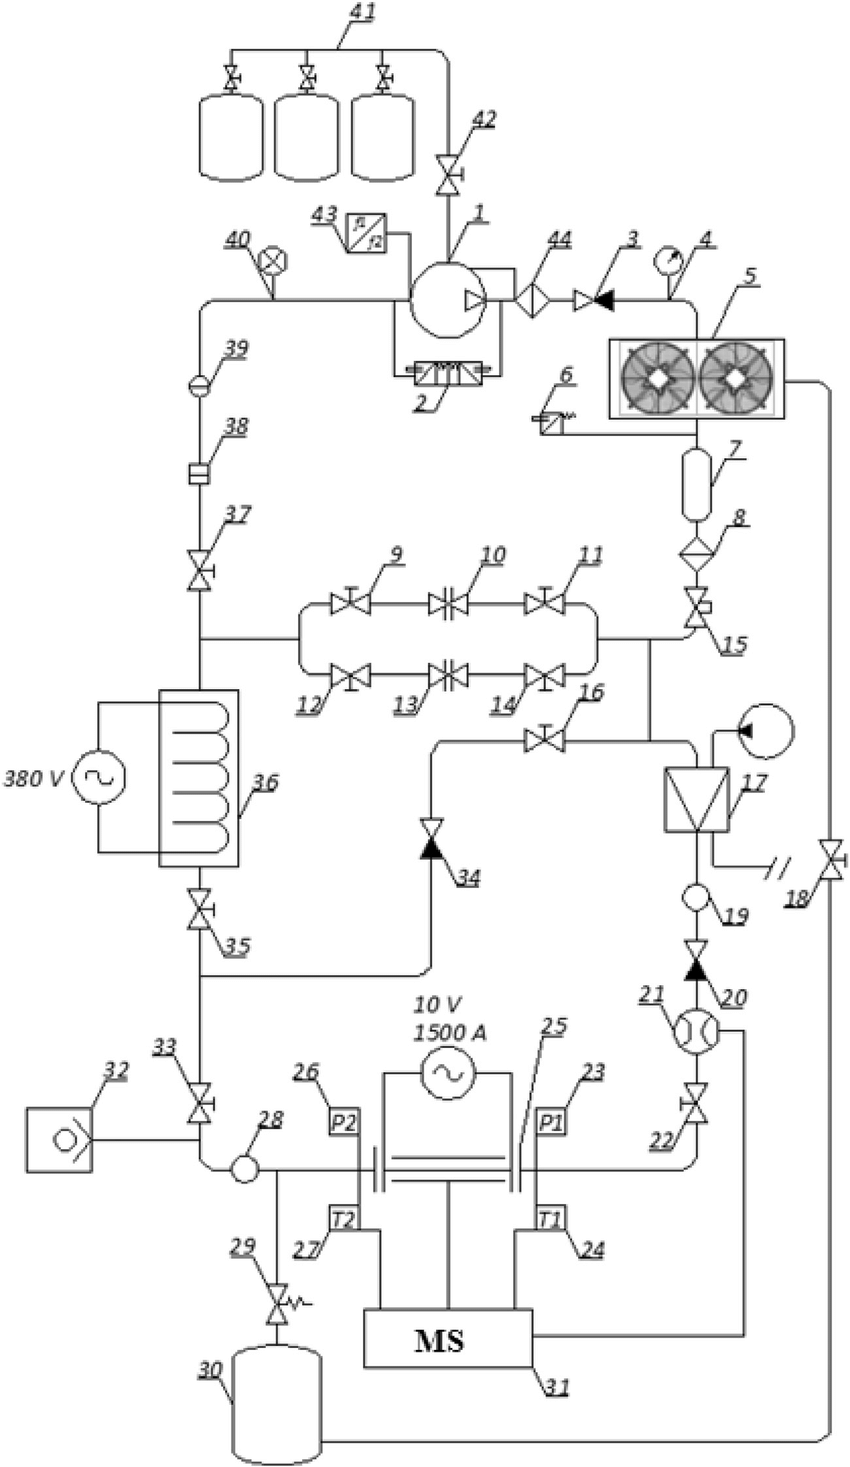 hight resolution of schematic diagram of test bench 1 compressor 2 double pressure relay